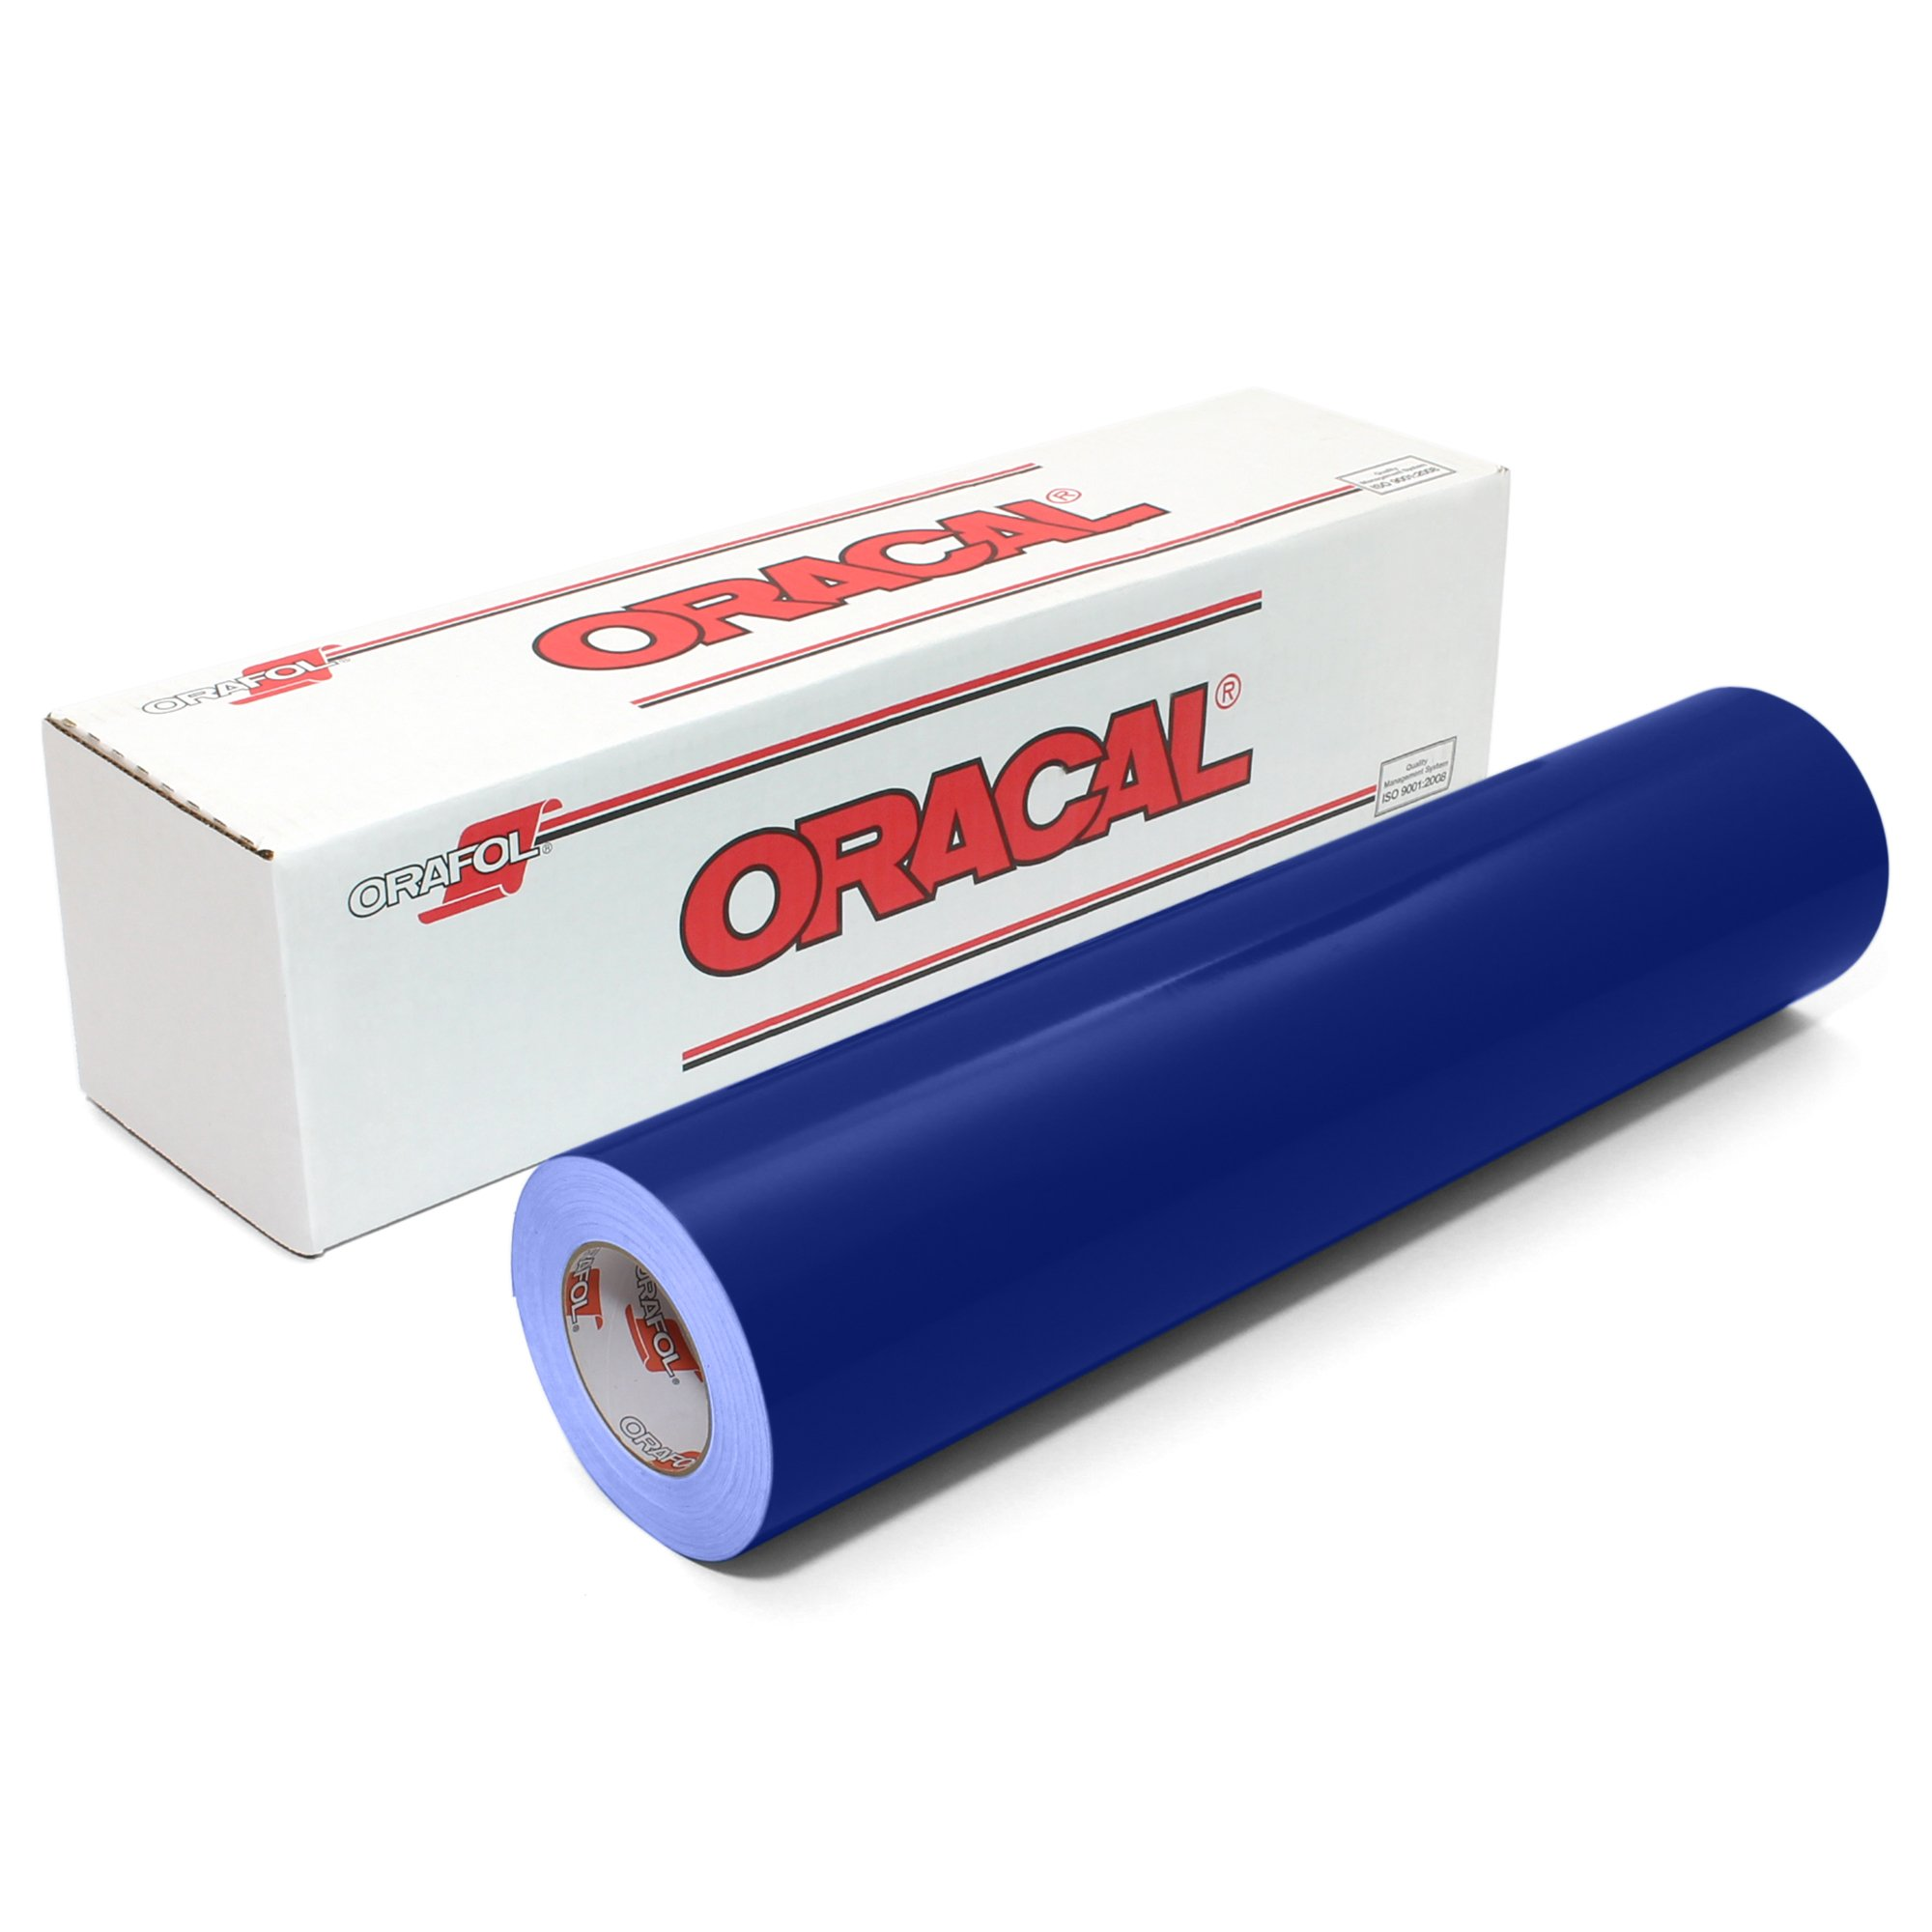 Oracal 651 Glossy Vinyl Roll 24 Inches by 150 Feet - Cobalt Blue